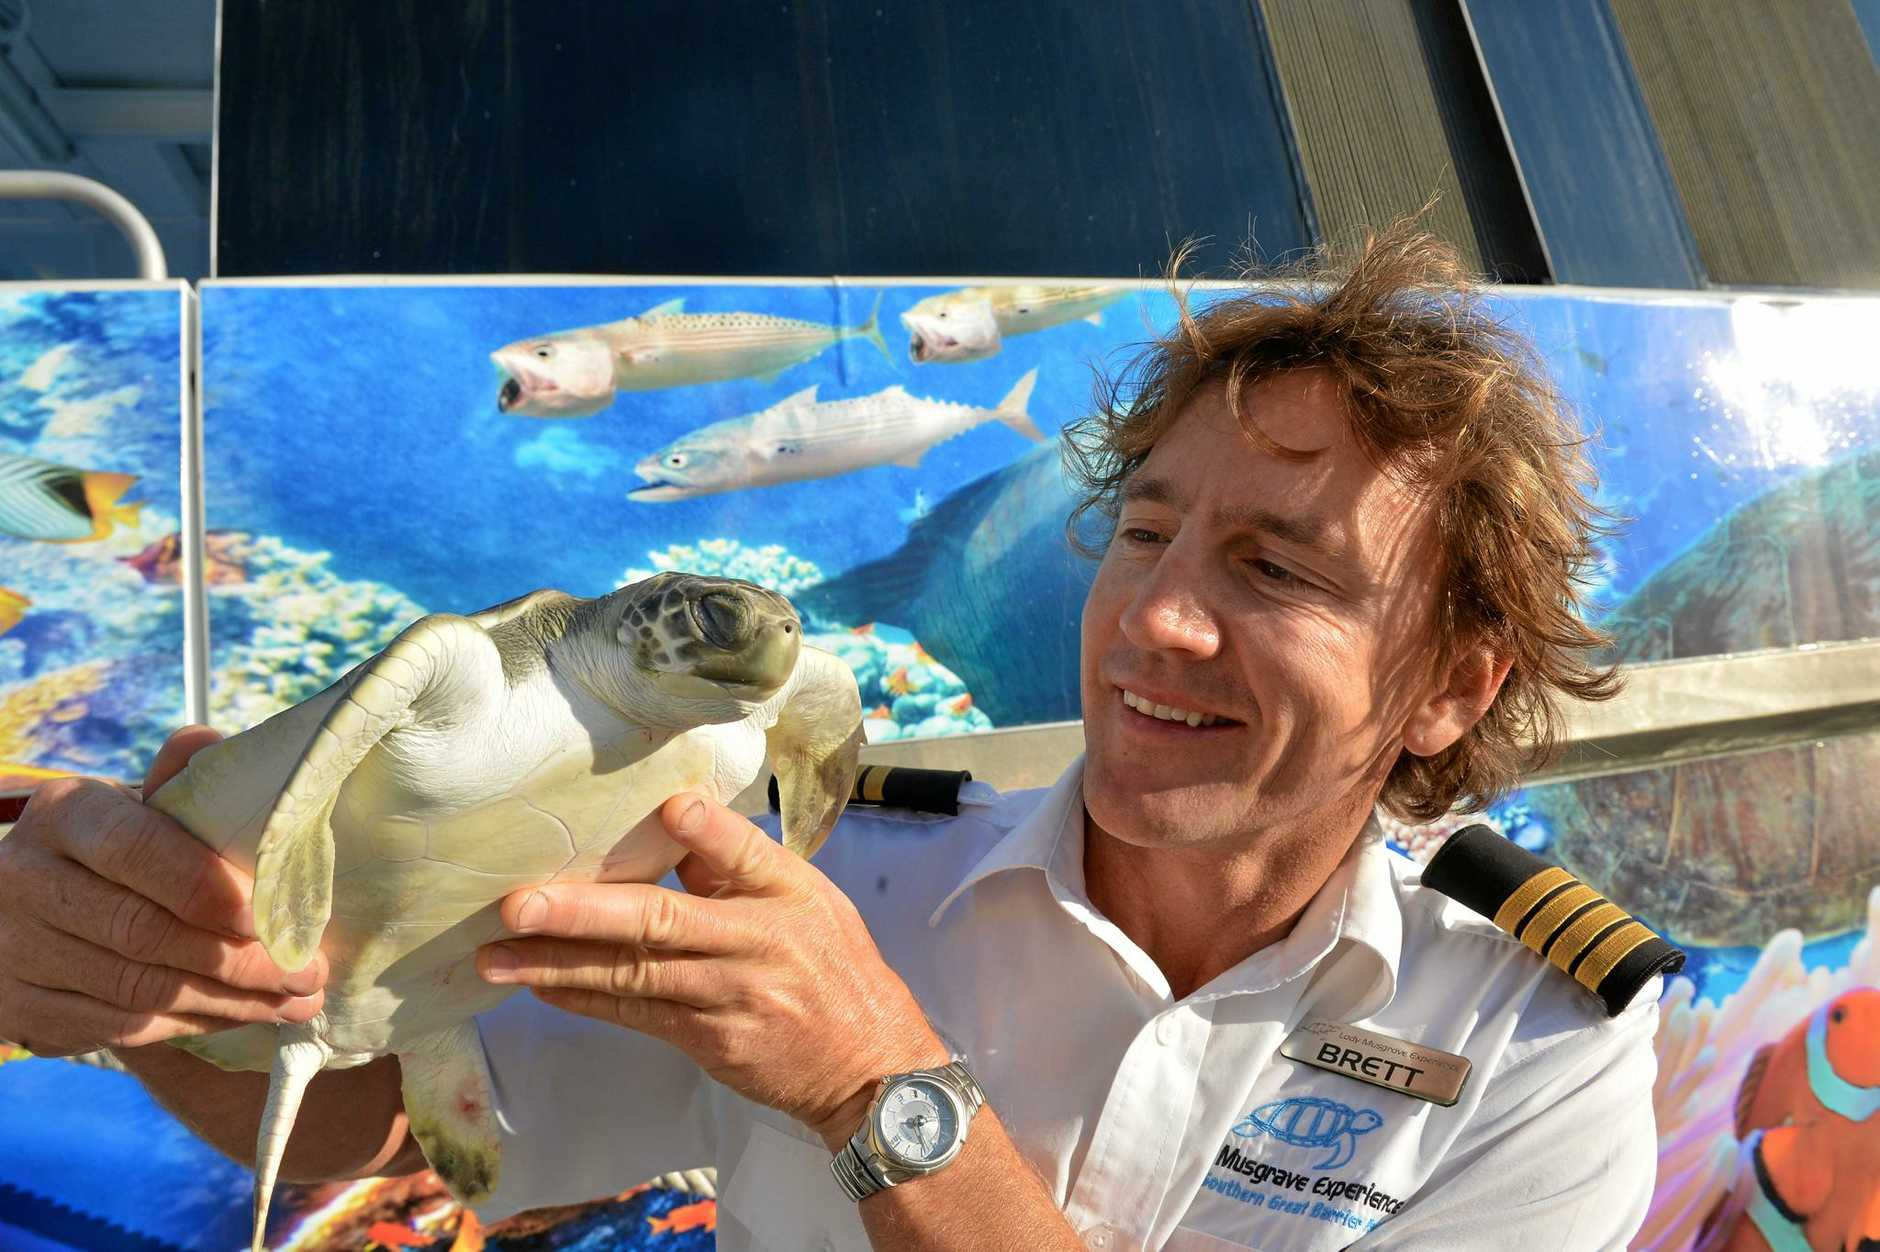 -Brett Lakey and Aaron Sprowl get ready to release a juvenile flatback that was rescued sick and injured from the waters off Sydney